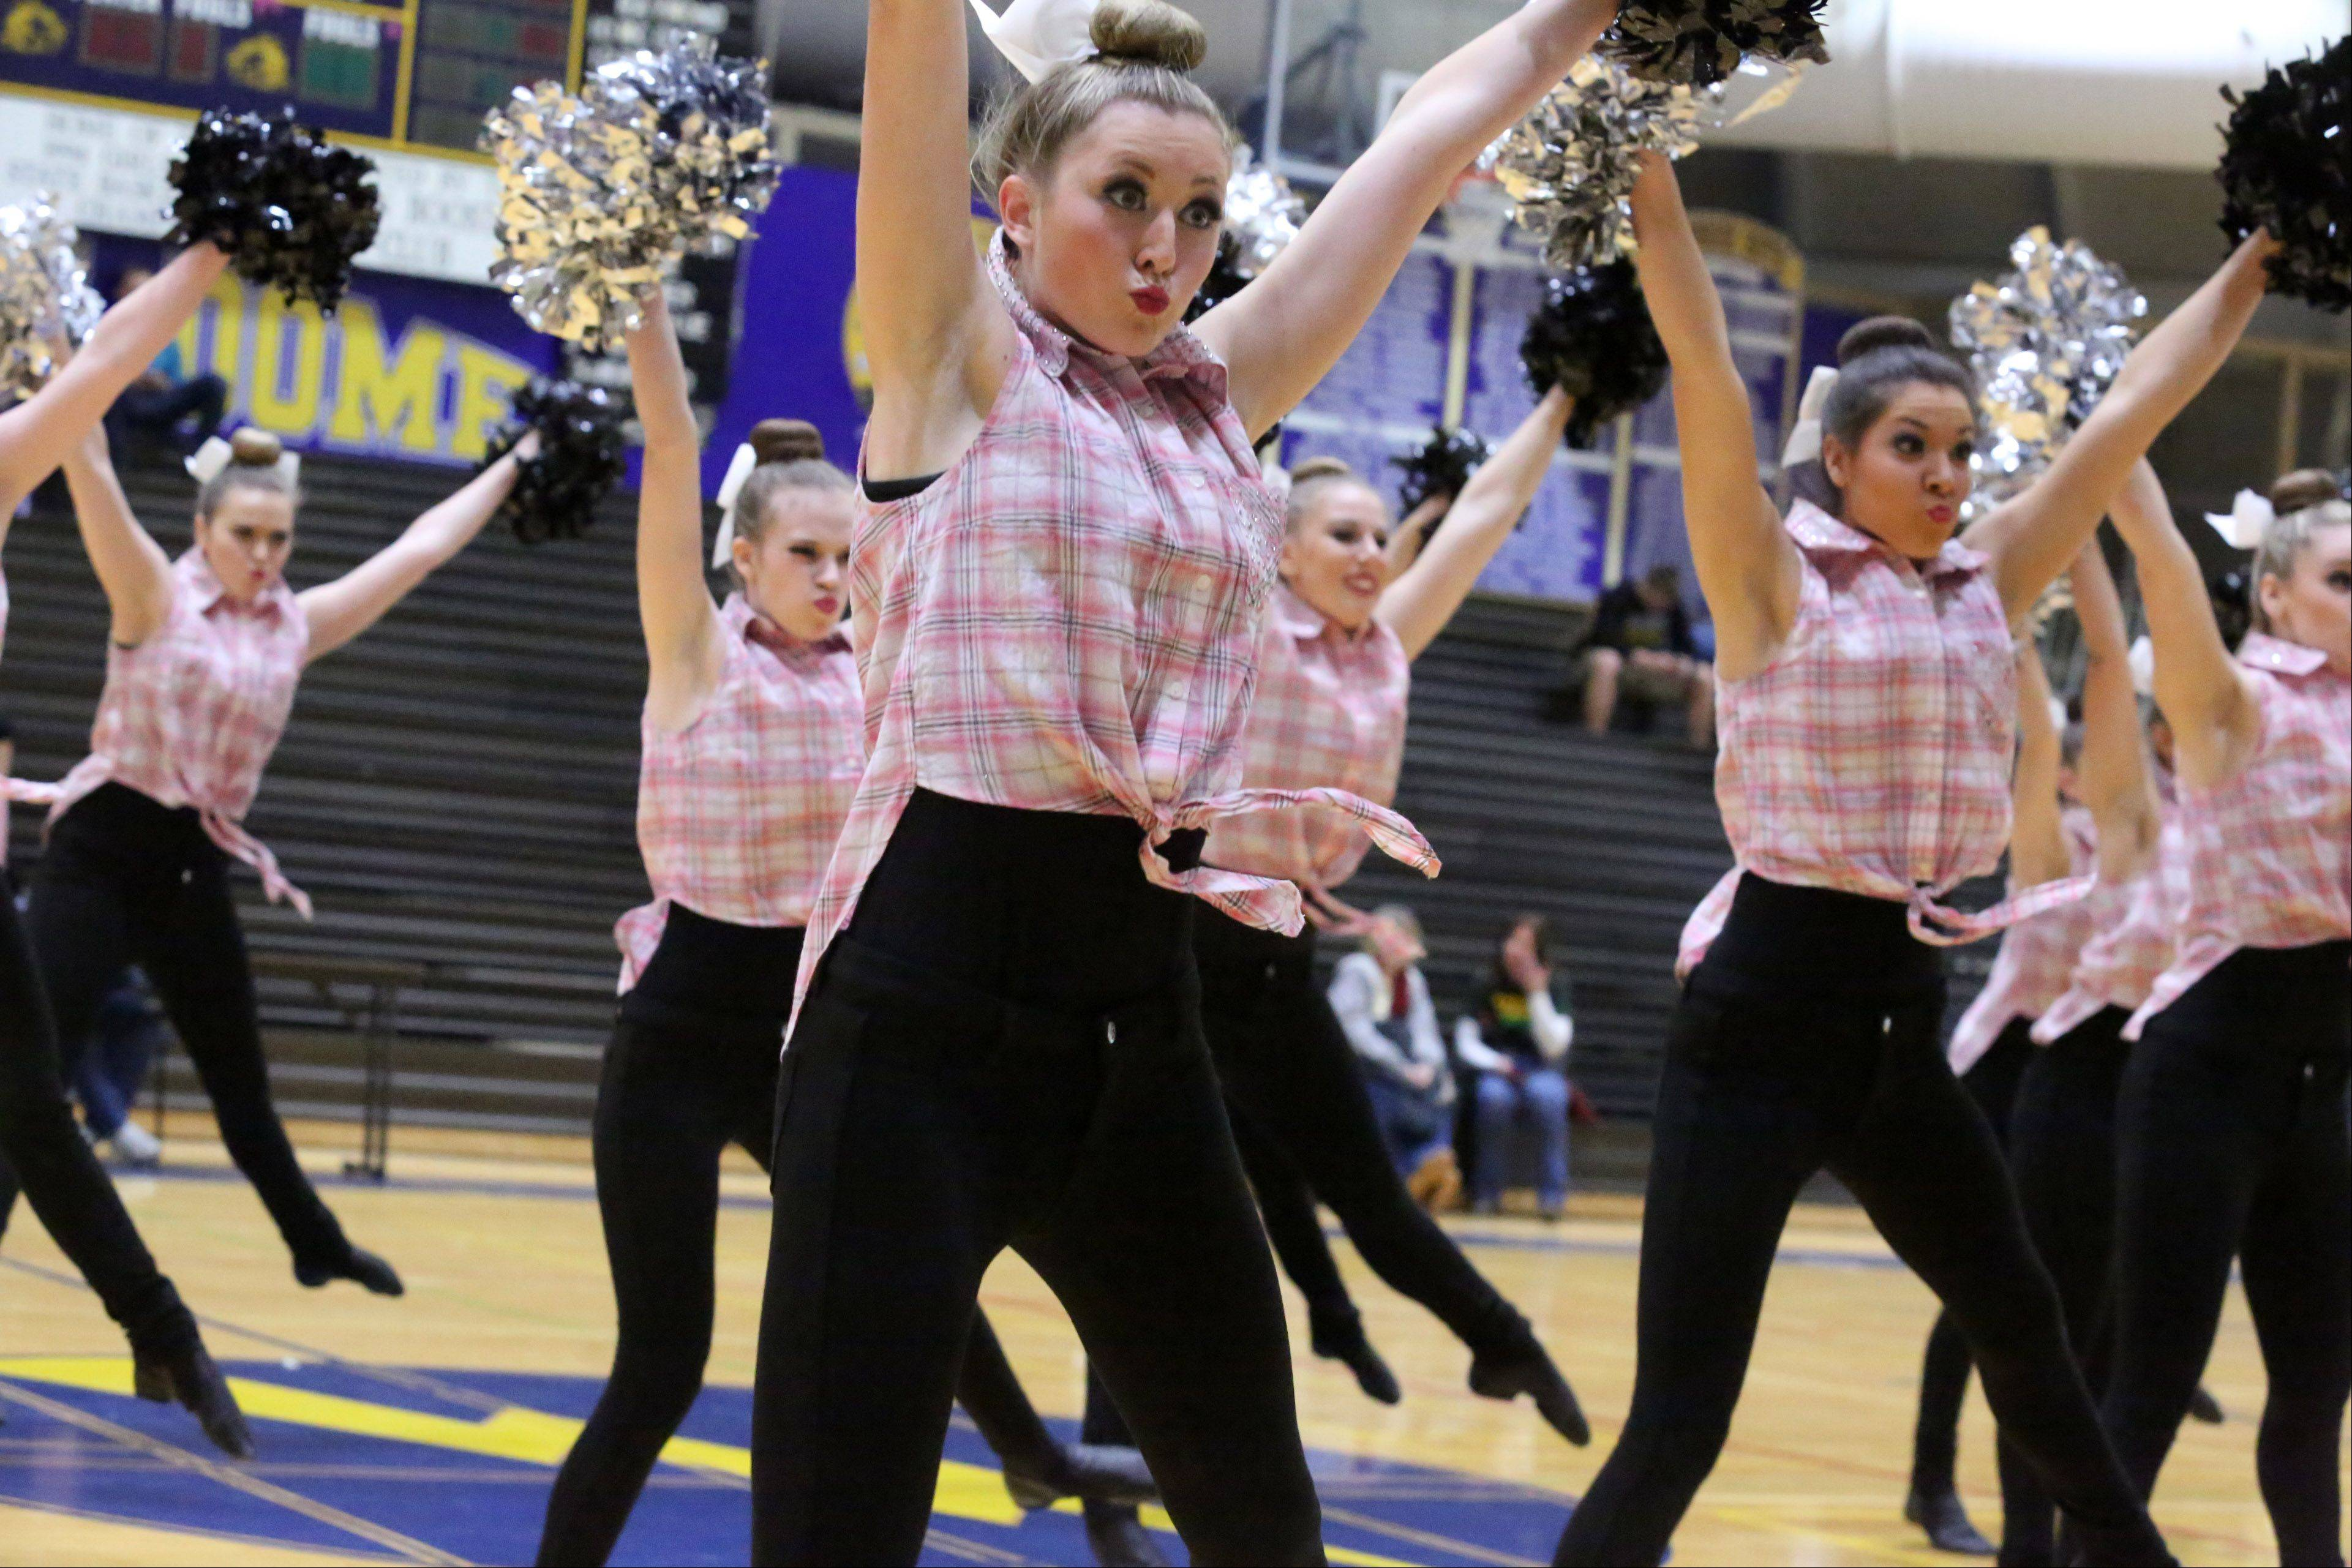 Rolling Meadows High School's dance team competes at the IHSA competitive dance sectional at Glenbrook South High School on Saturday in Glenview.